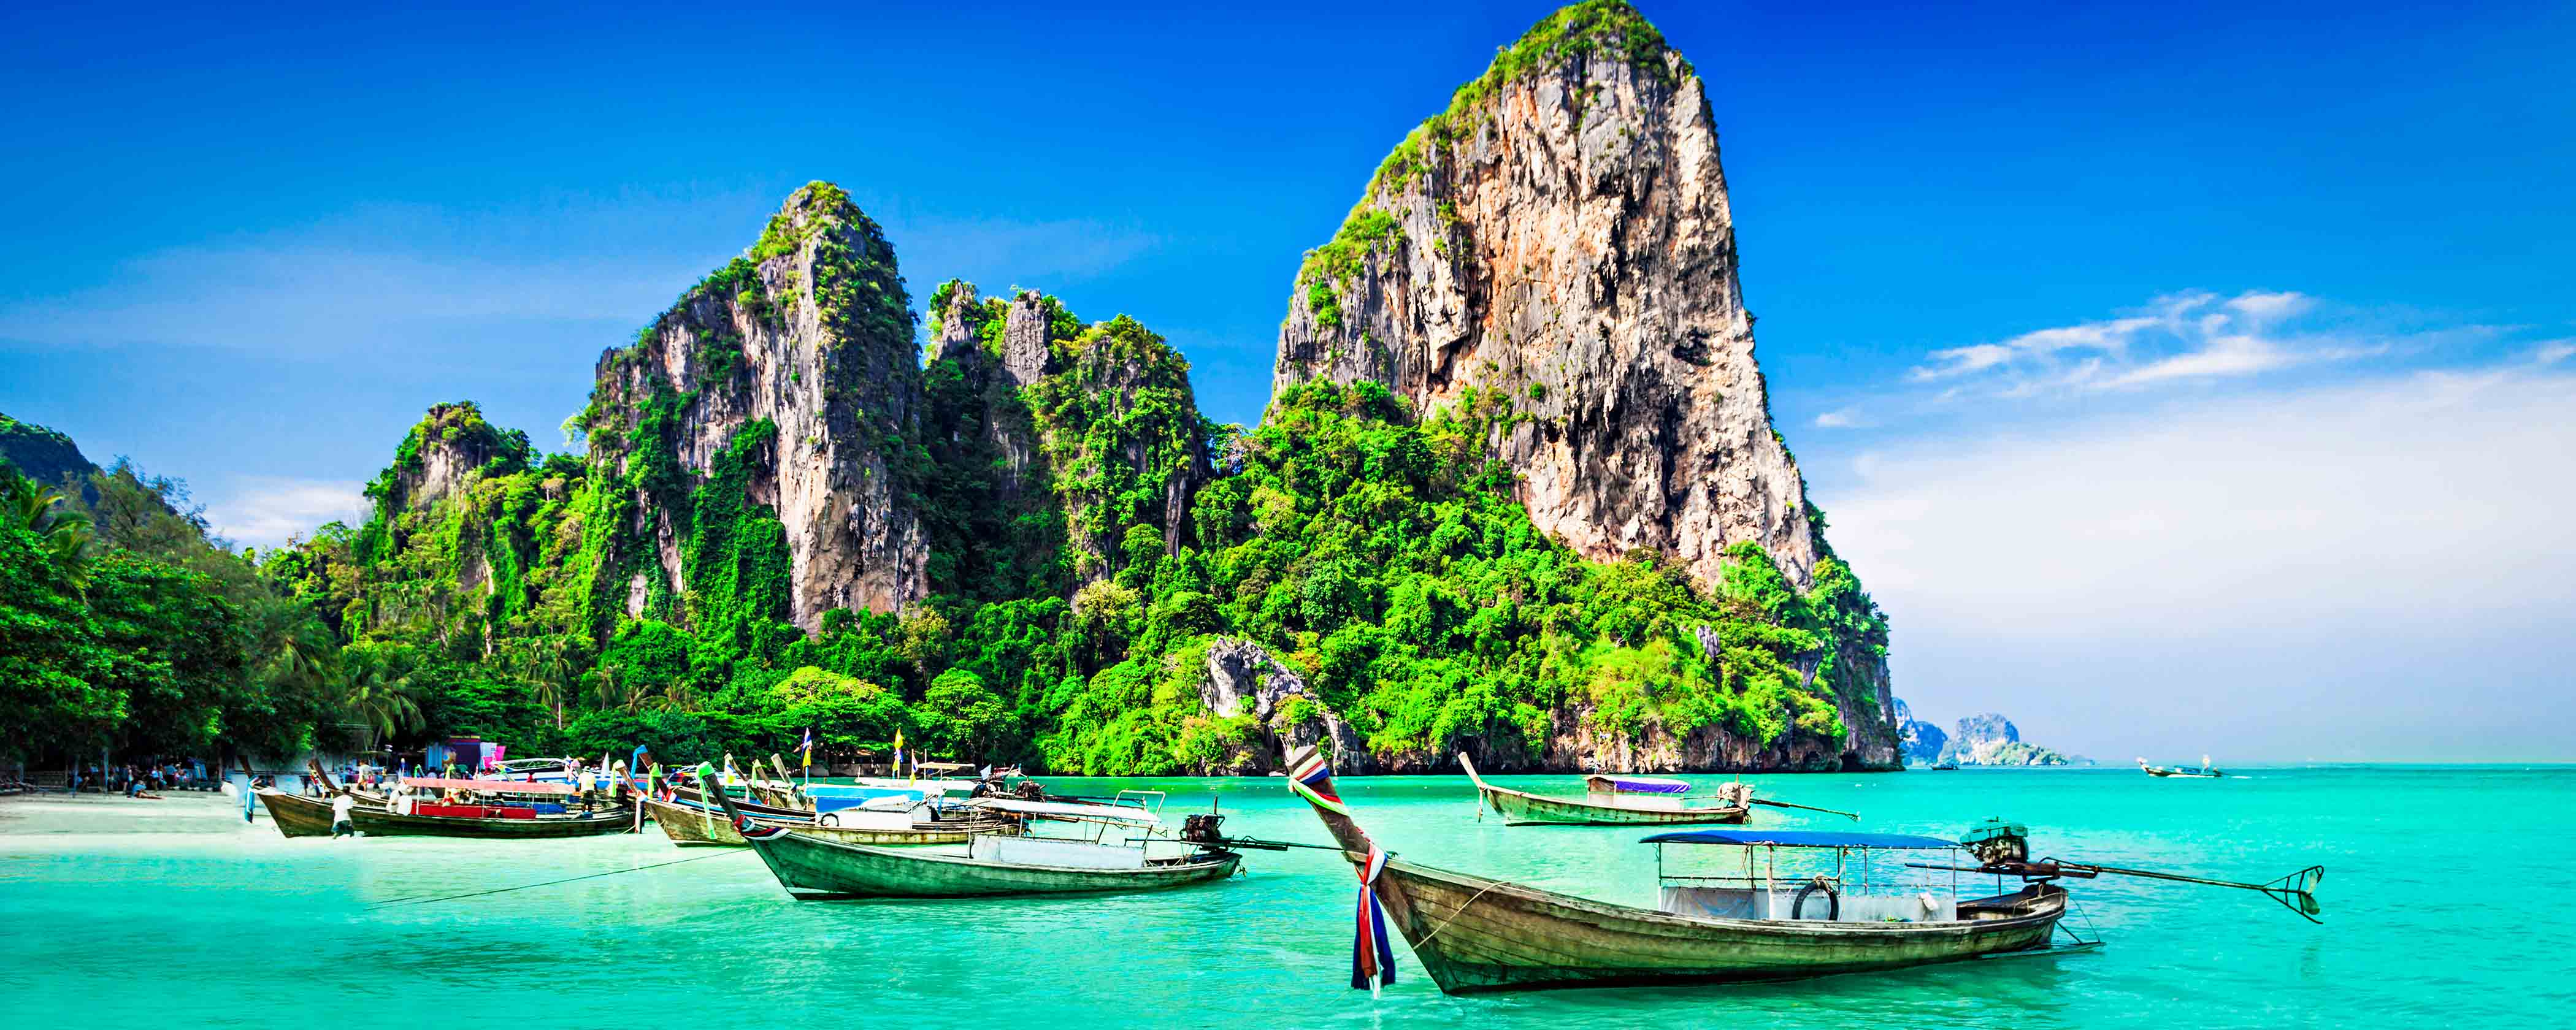 Best Thailand Beach Itinerary